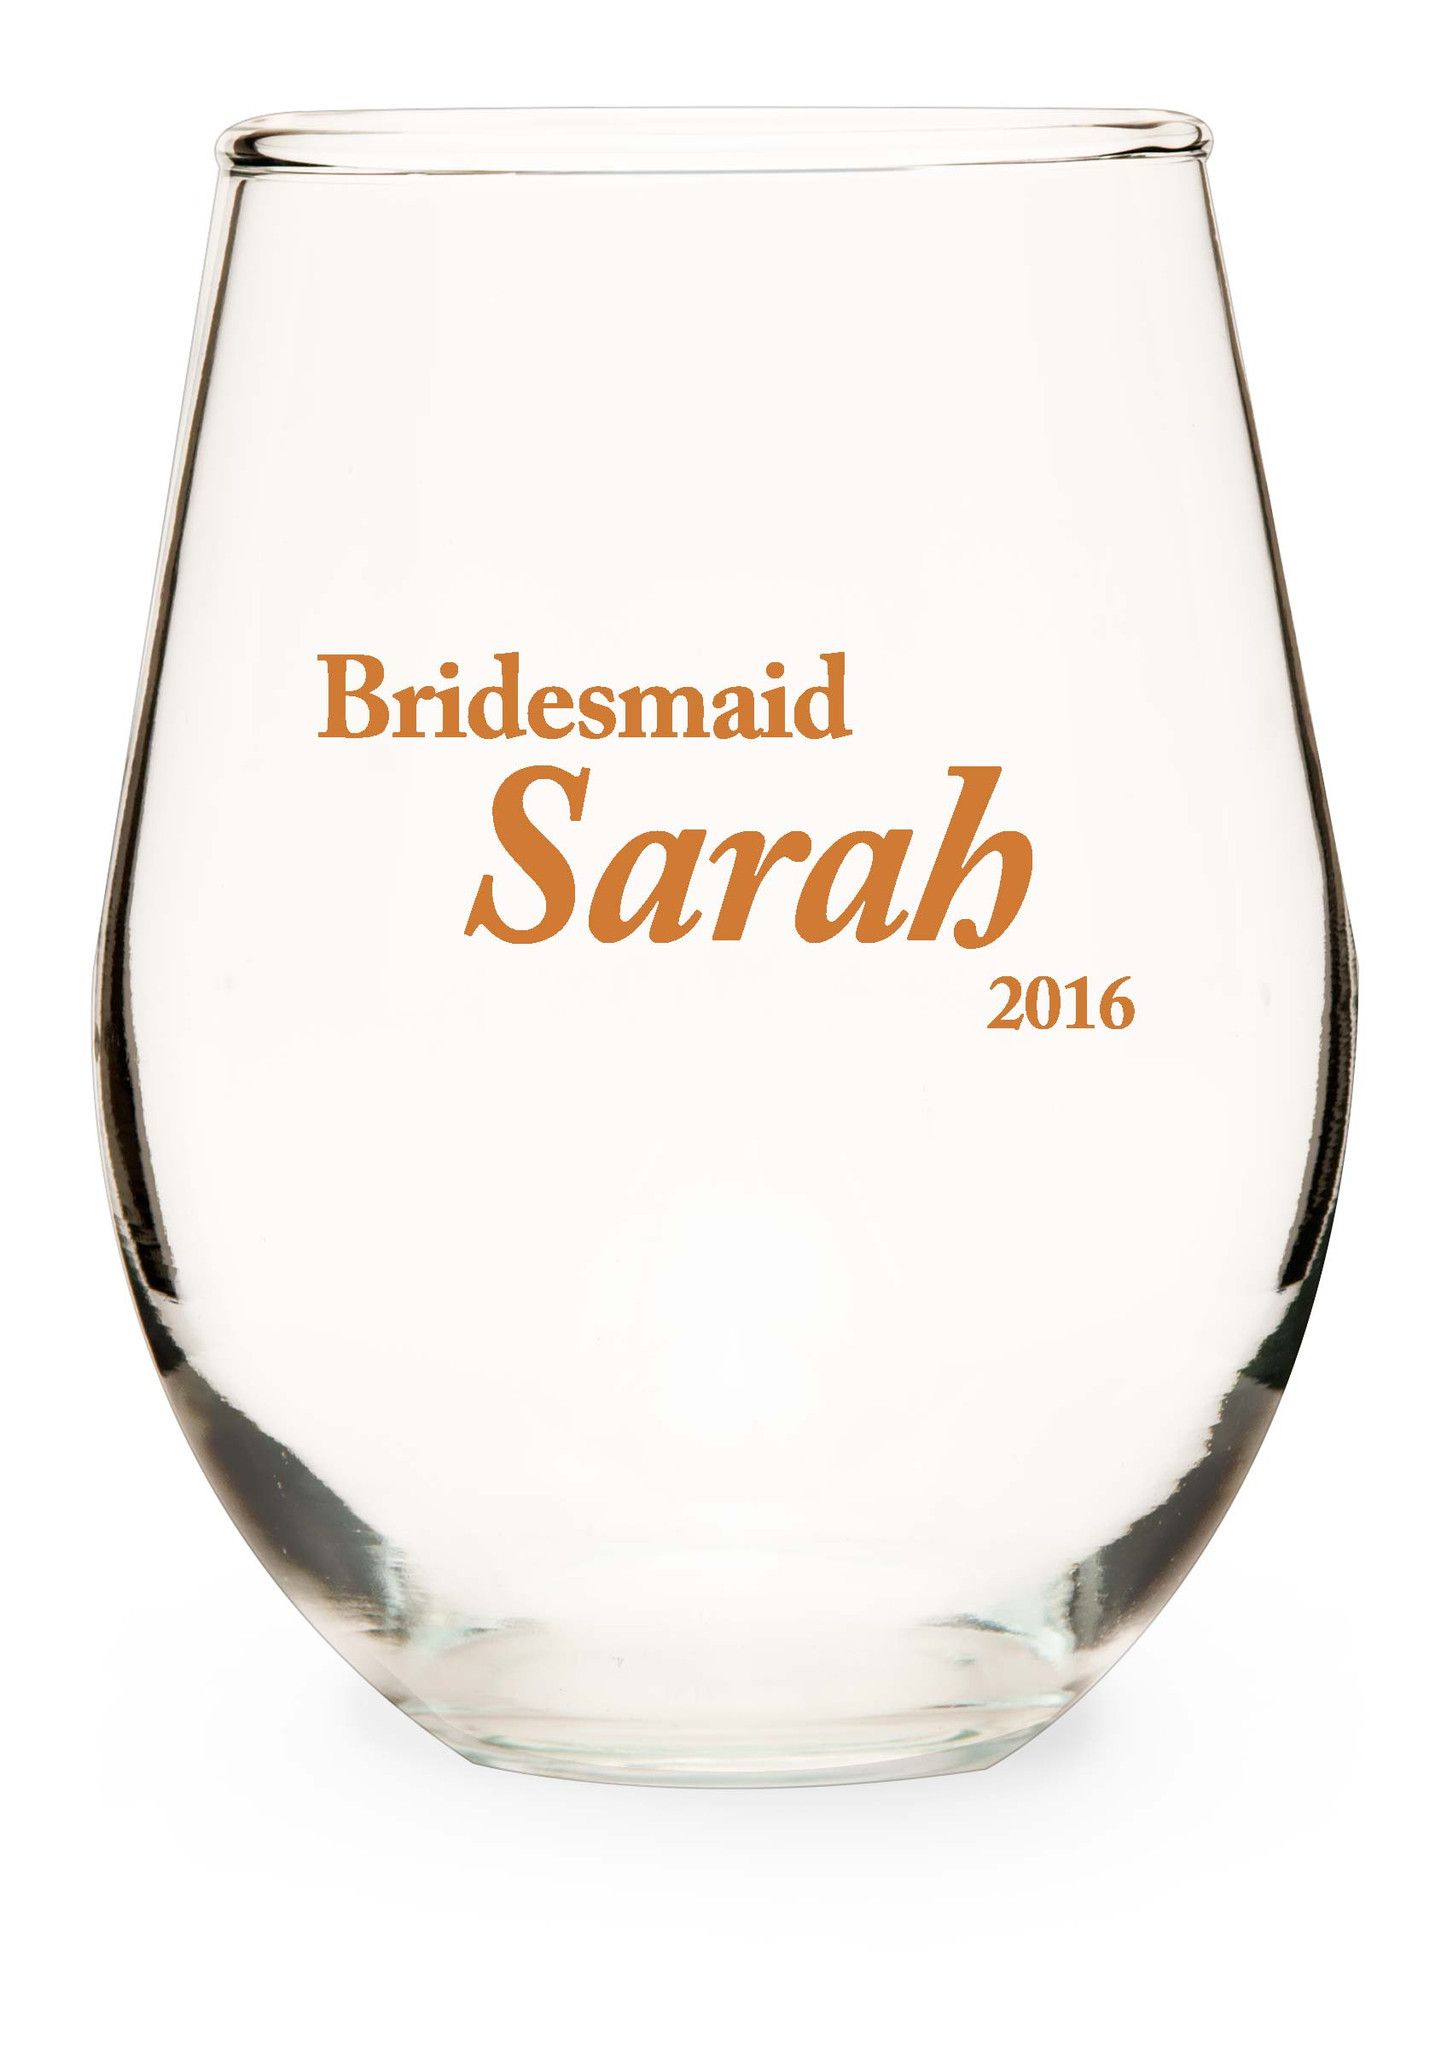 wedding candles, wedding favors, wedding party gifts, personalized ...